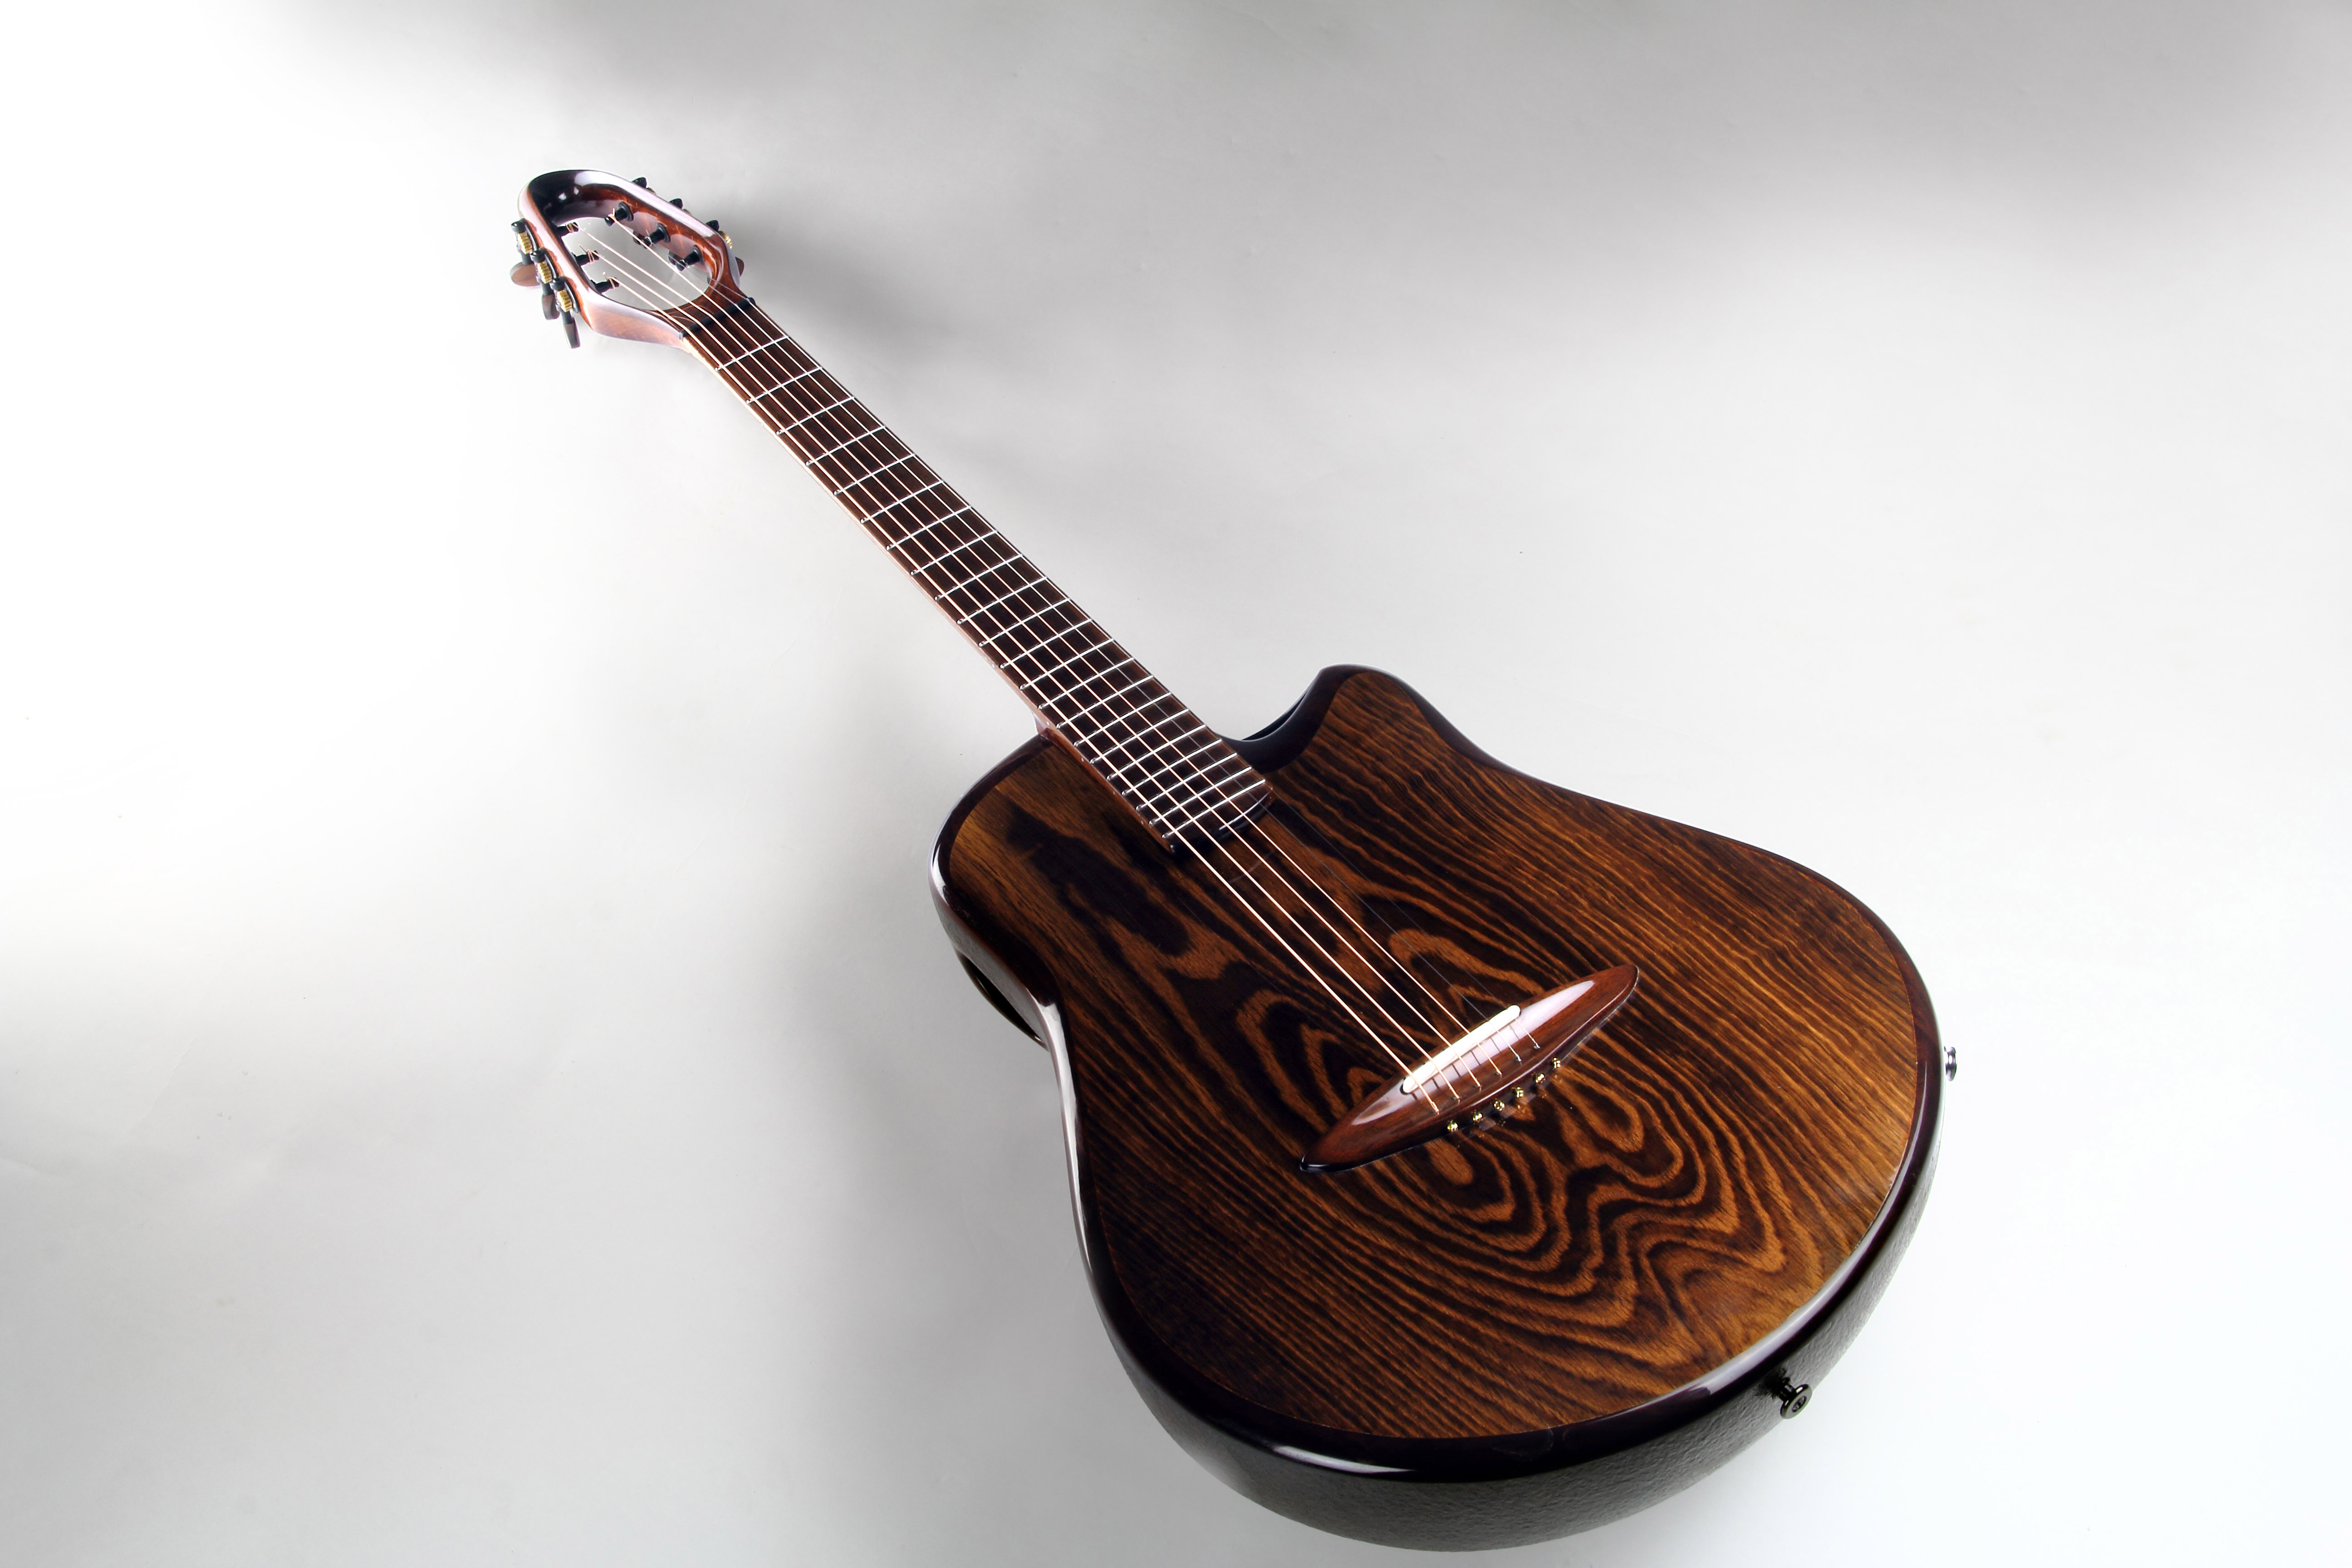 CannaGuitar with top from Sonoveneer oak, fretboard and bridge from Sonowood walnut